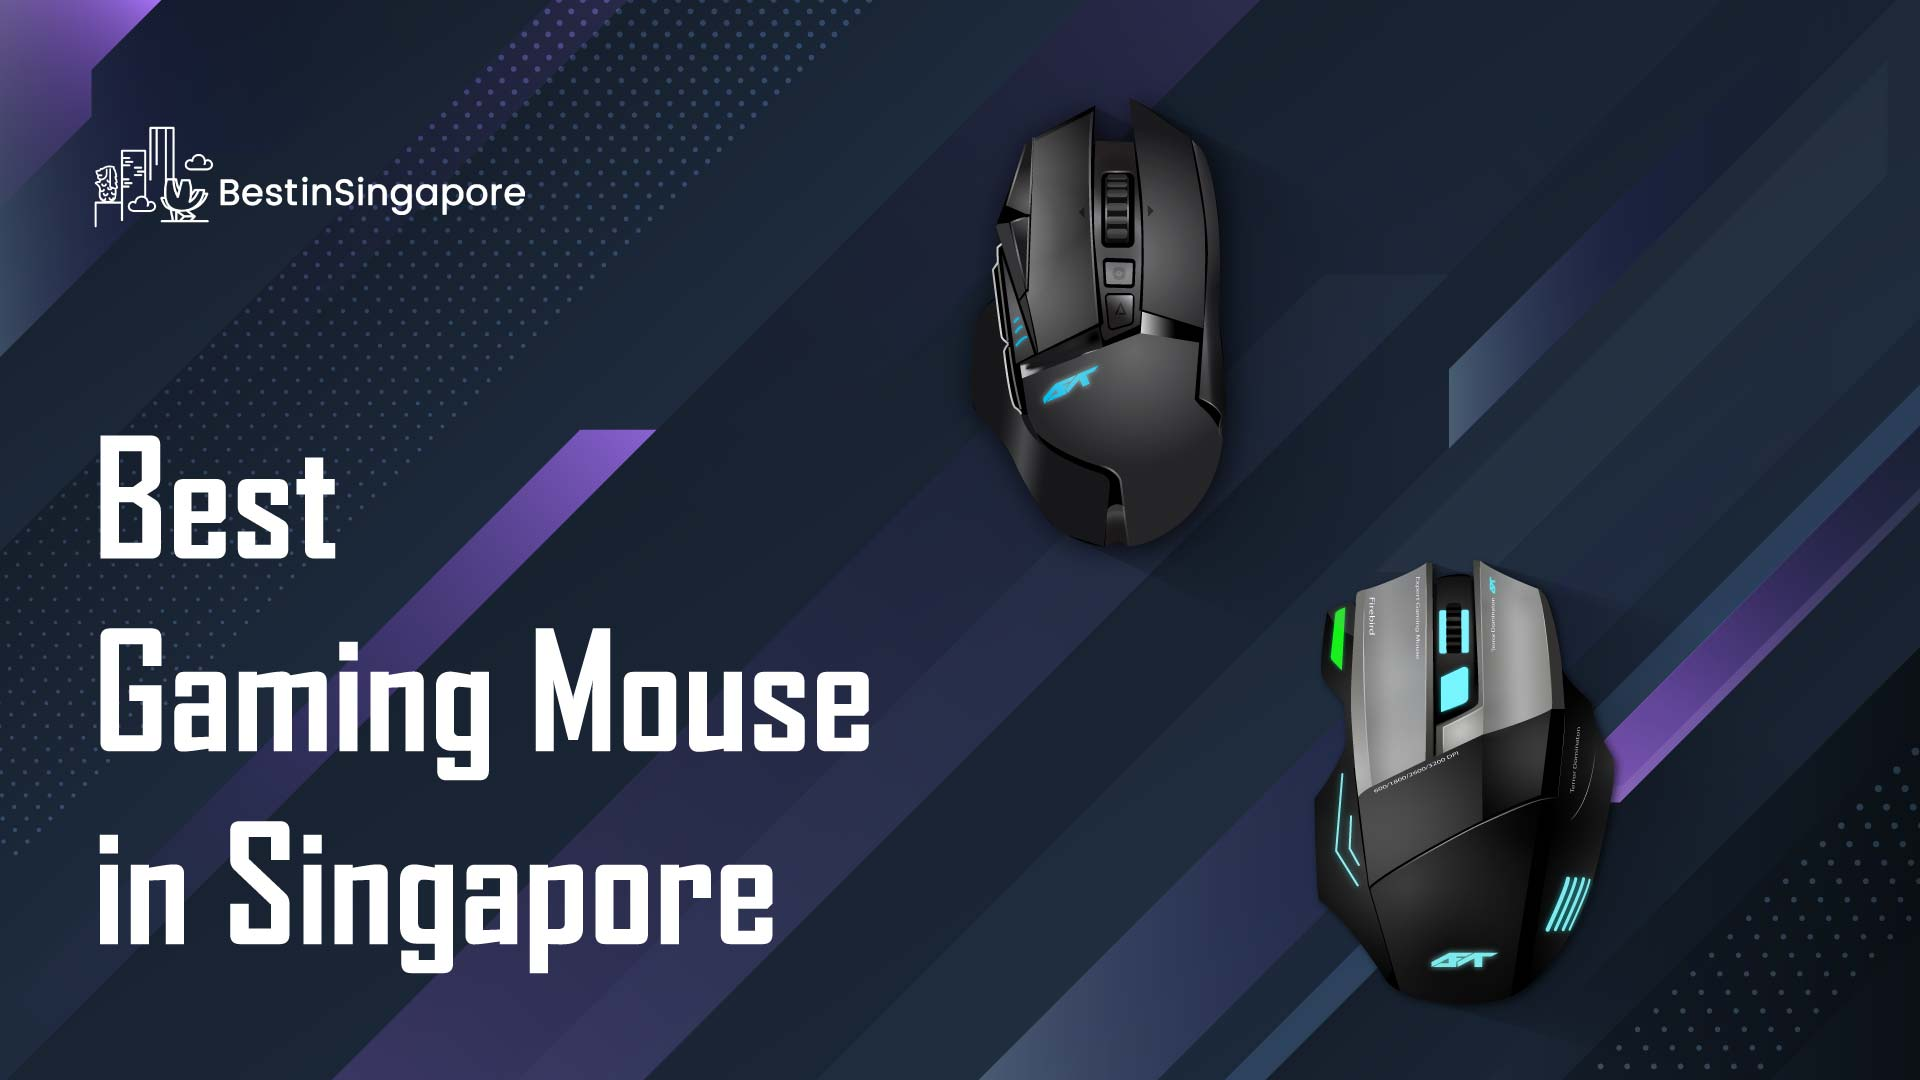 Best Gaming Mouse in Singapore